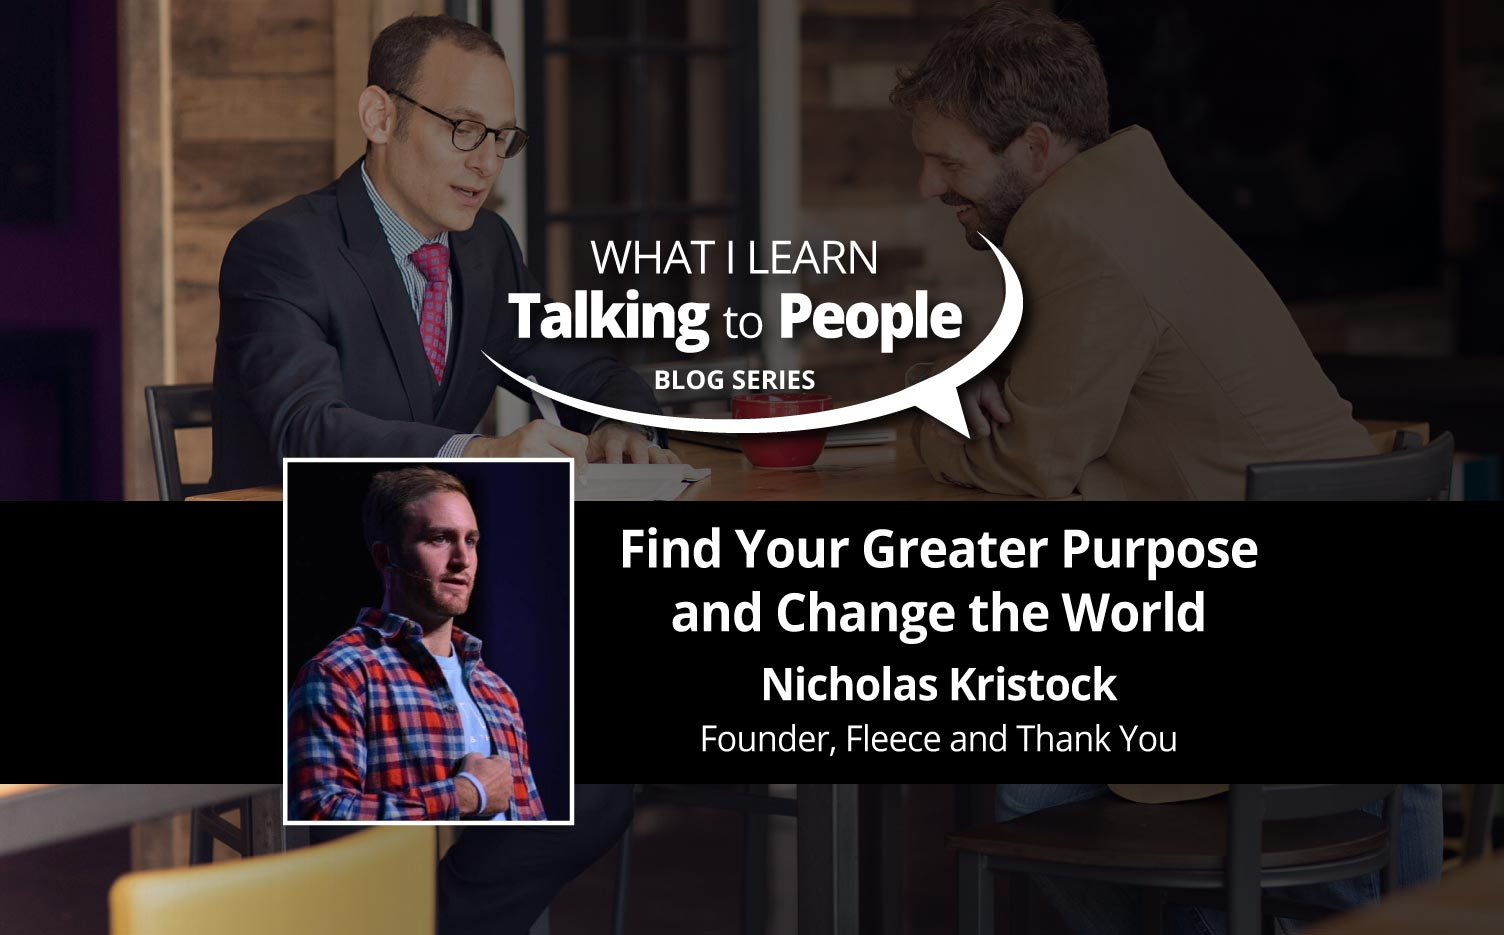 Jon-Dwoskins-What-I-Learn-Talking-to-People-Blog-Featuring-Nicholas-Kristock